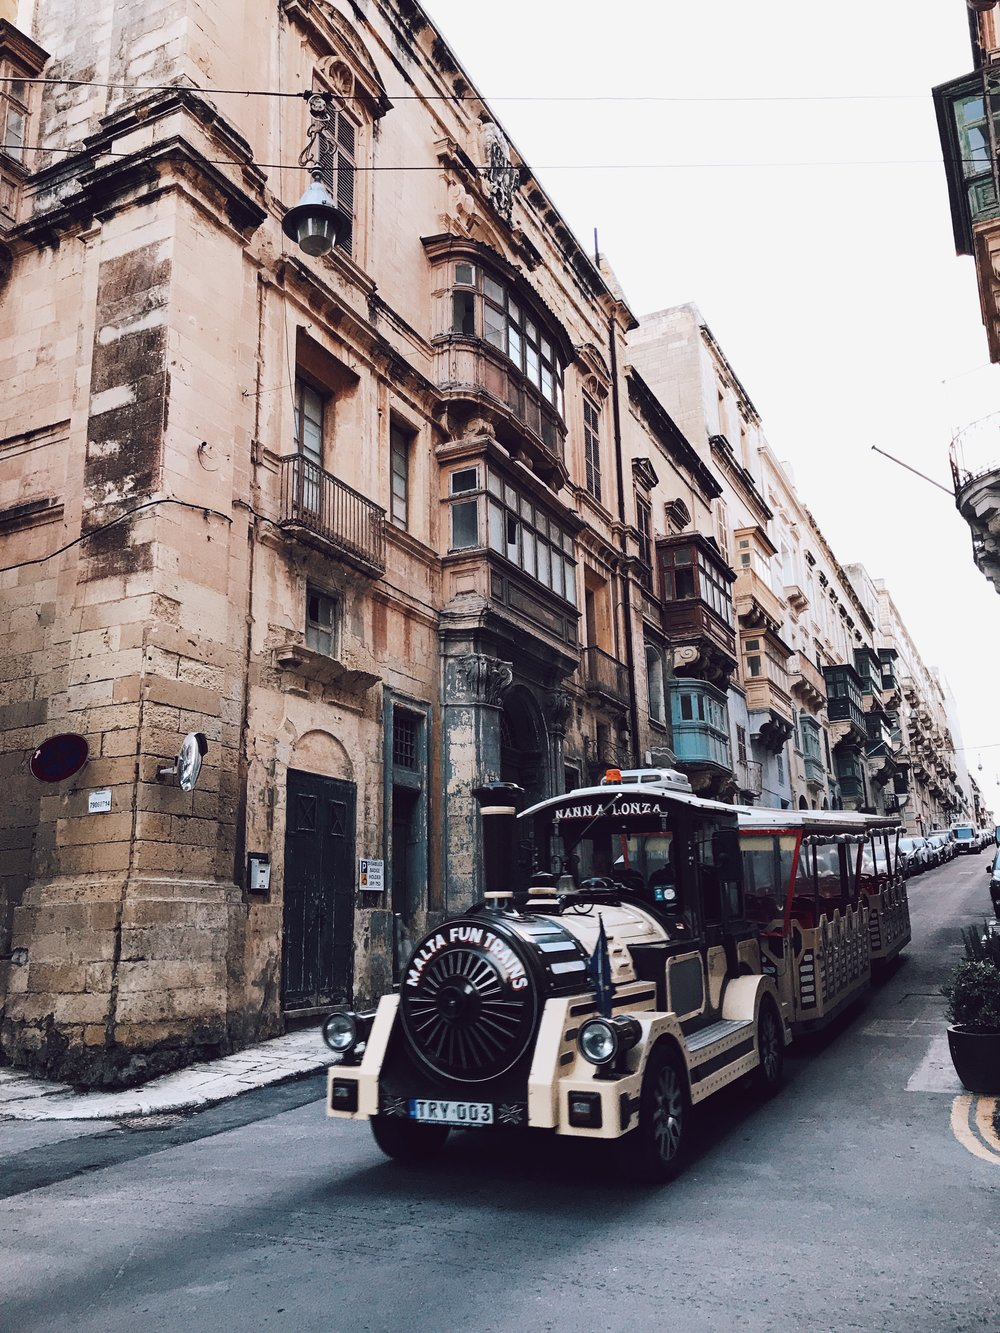 3. Valetta - The capital city and the liveliest one of the three. Seems like this was the place the whole island had been hiding all along.